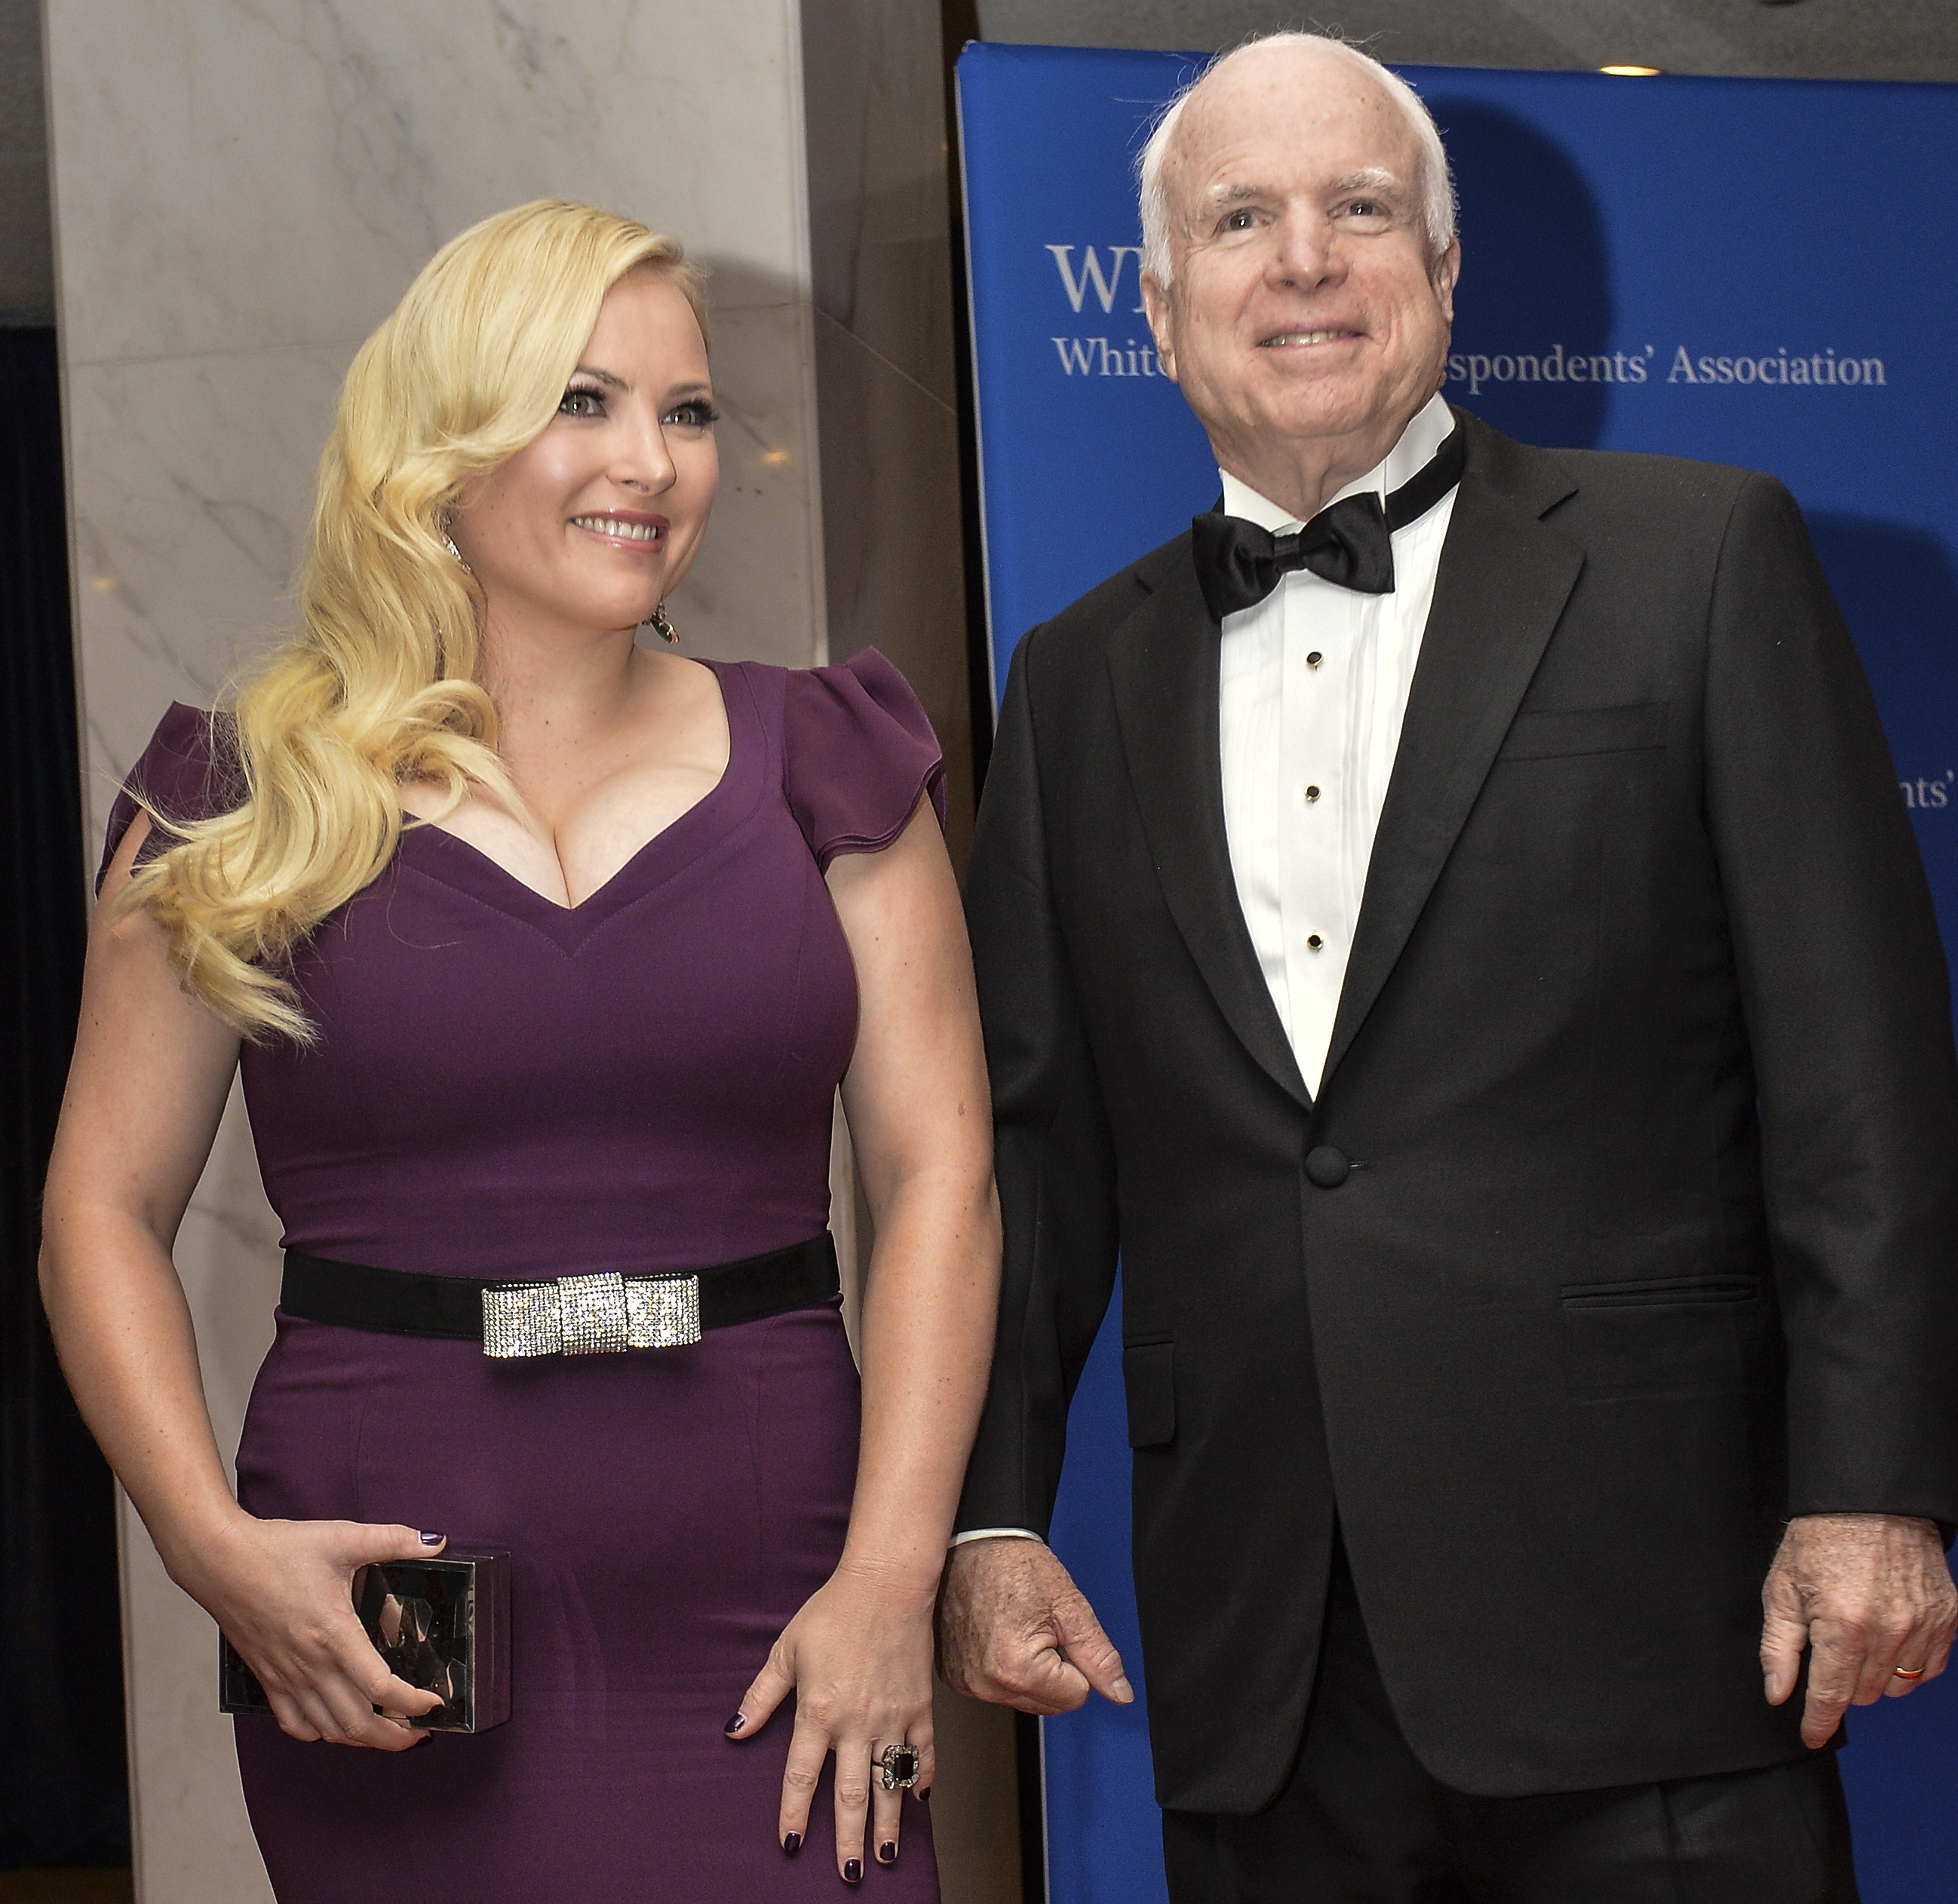 78 Images About Meghan Mccain On Pinterest: Meghan McCain Tweets Photo Of 'amazing Hike With Dad